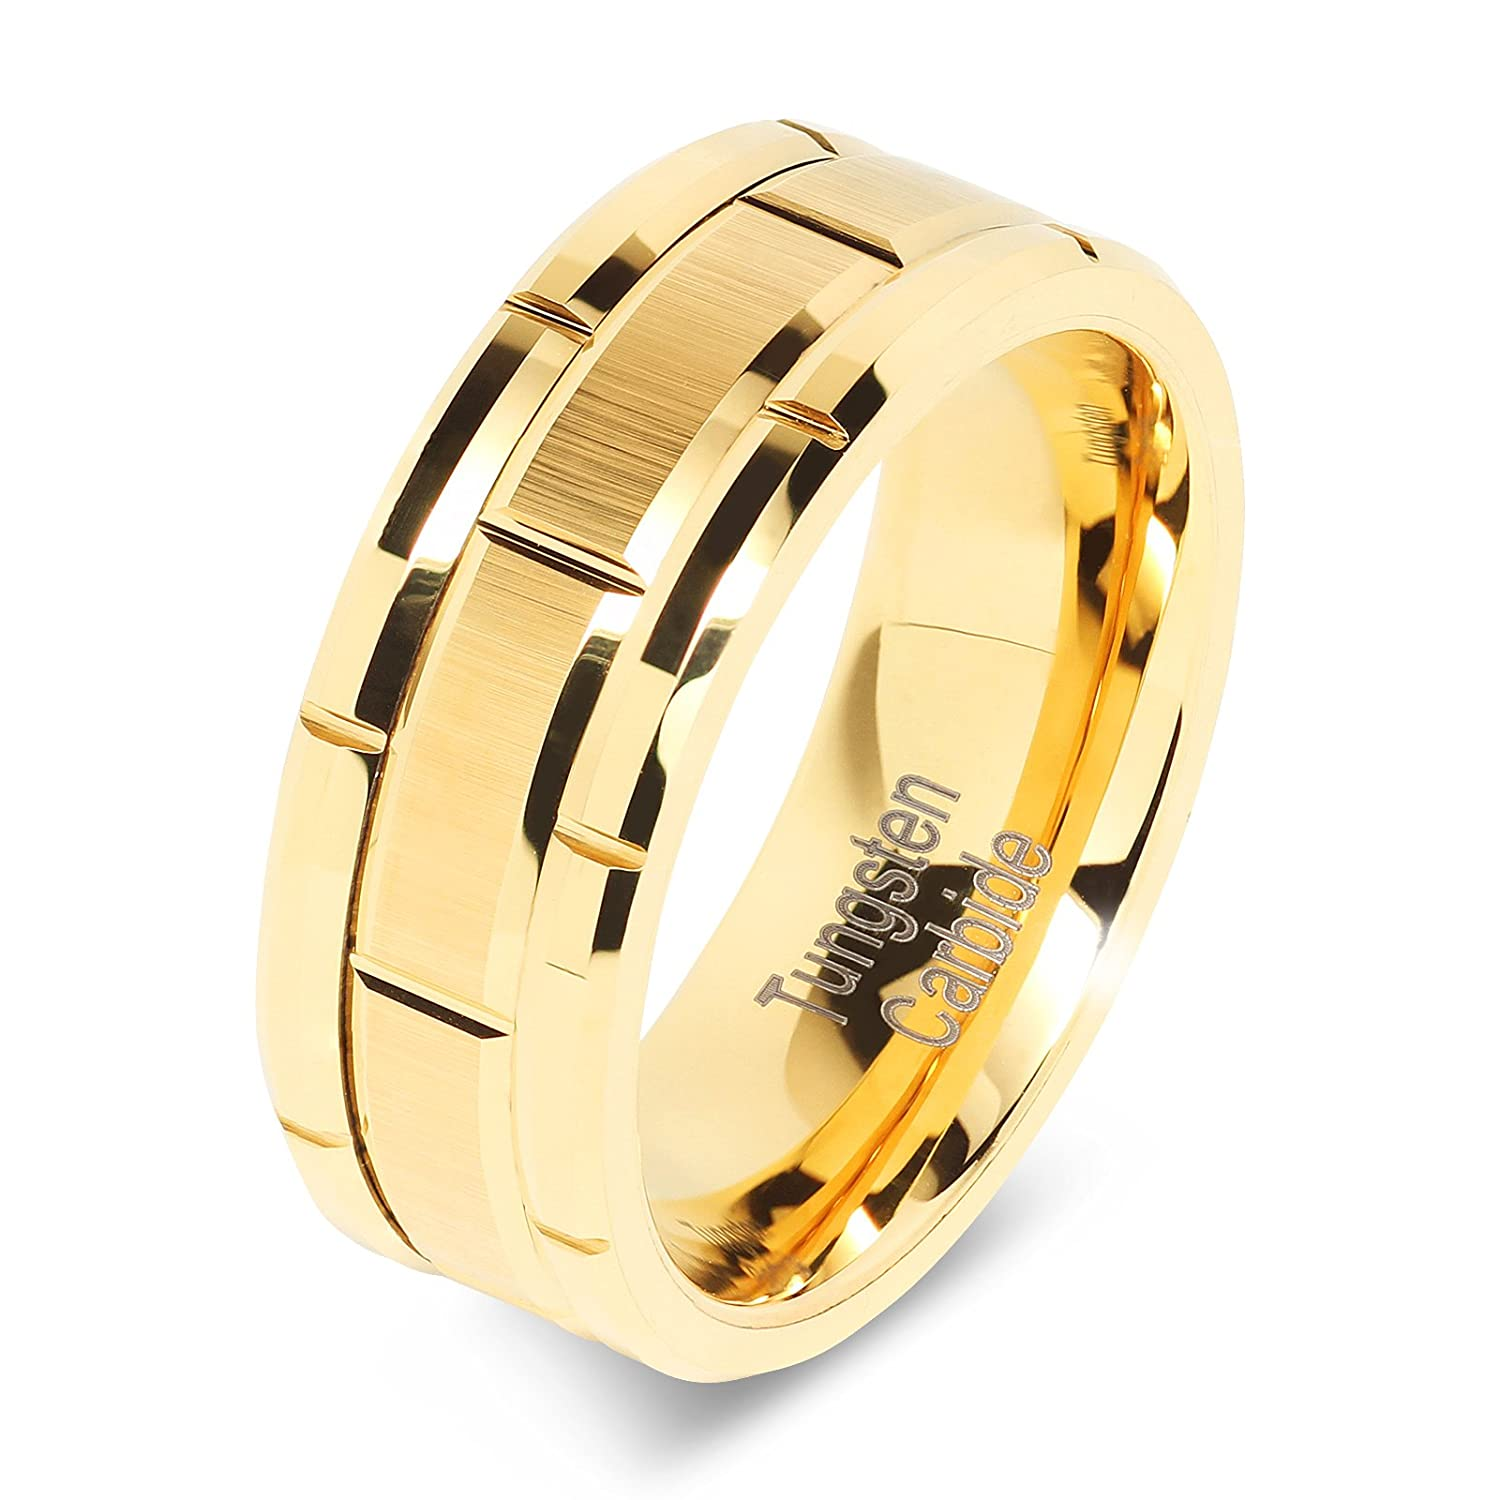 8mm Men's Tungsten Ring Wedding Band 14k Gold Brush Center & Grooves Size 8-16 100S JEWELRY NA